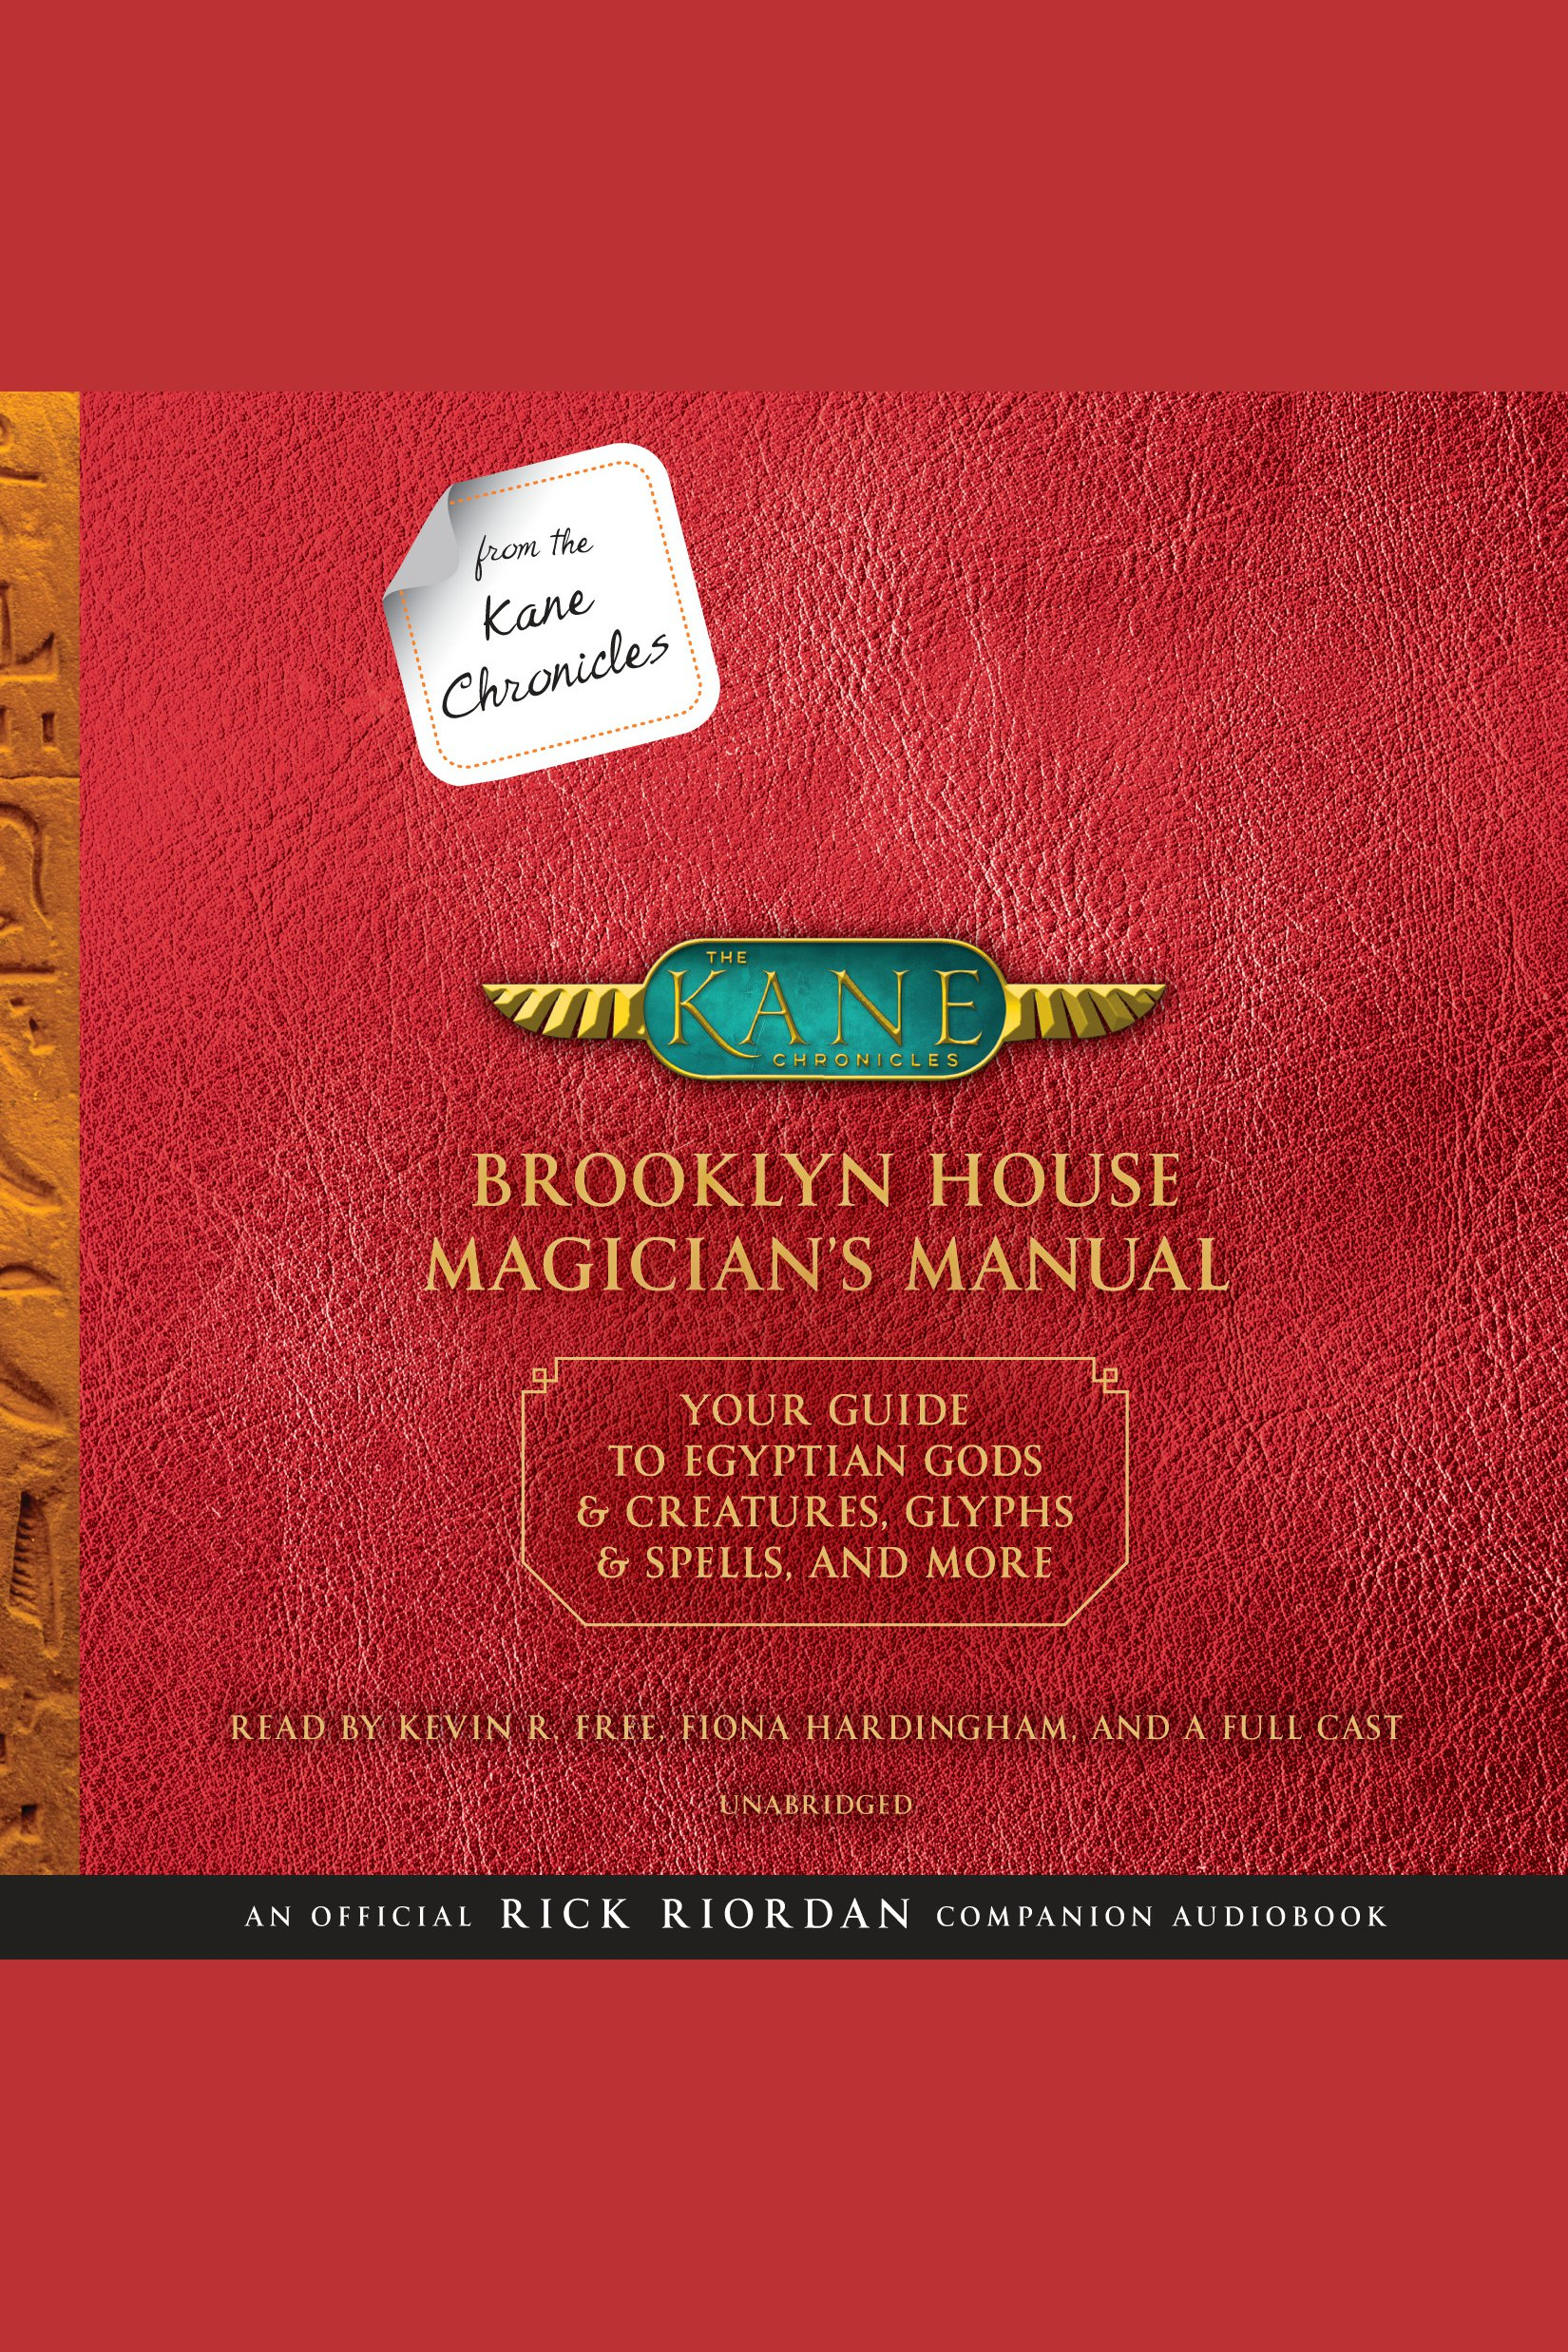 From the Kane Chronicles: Brooklyn House Magician's Manual Your Guide to Egyptian Gods & Creatures, Glyphs & Spells, & More: (An Official Rick Riordan Companion Book)